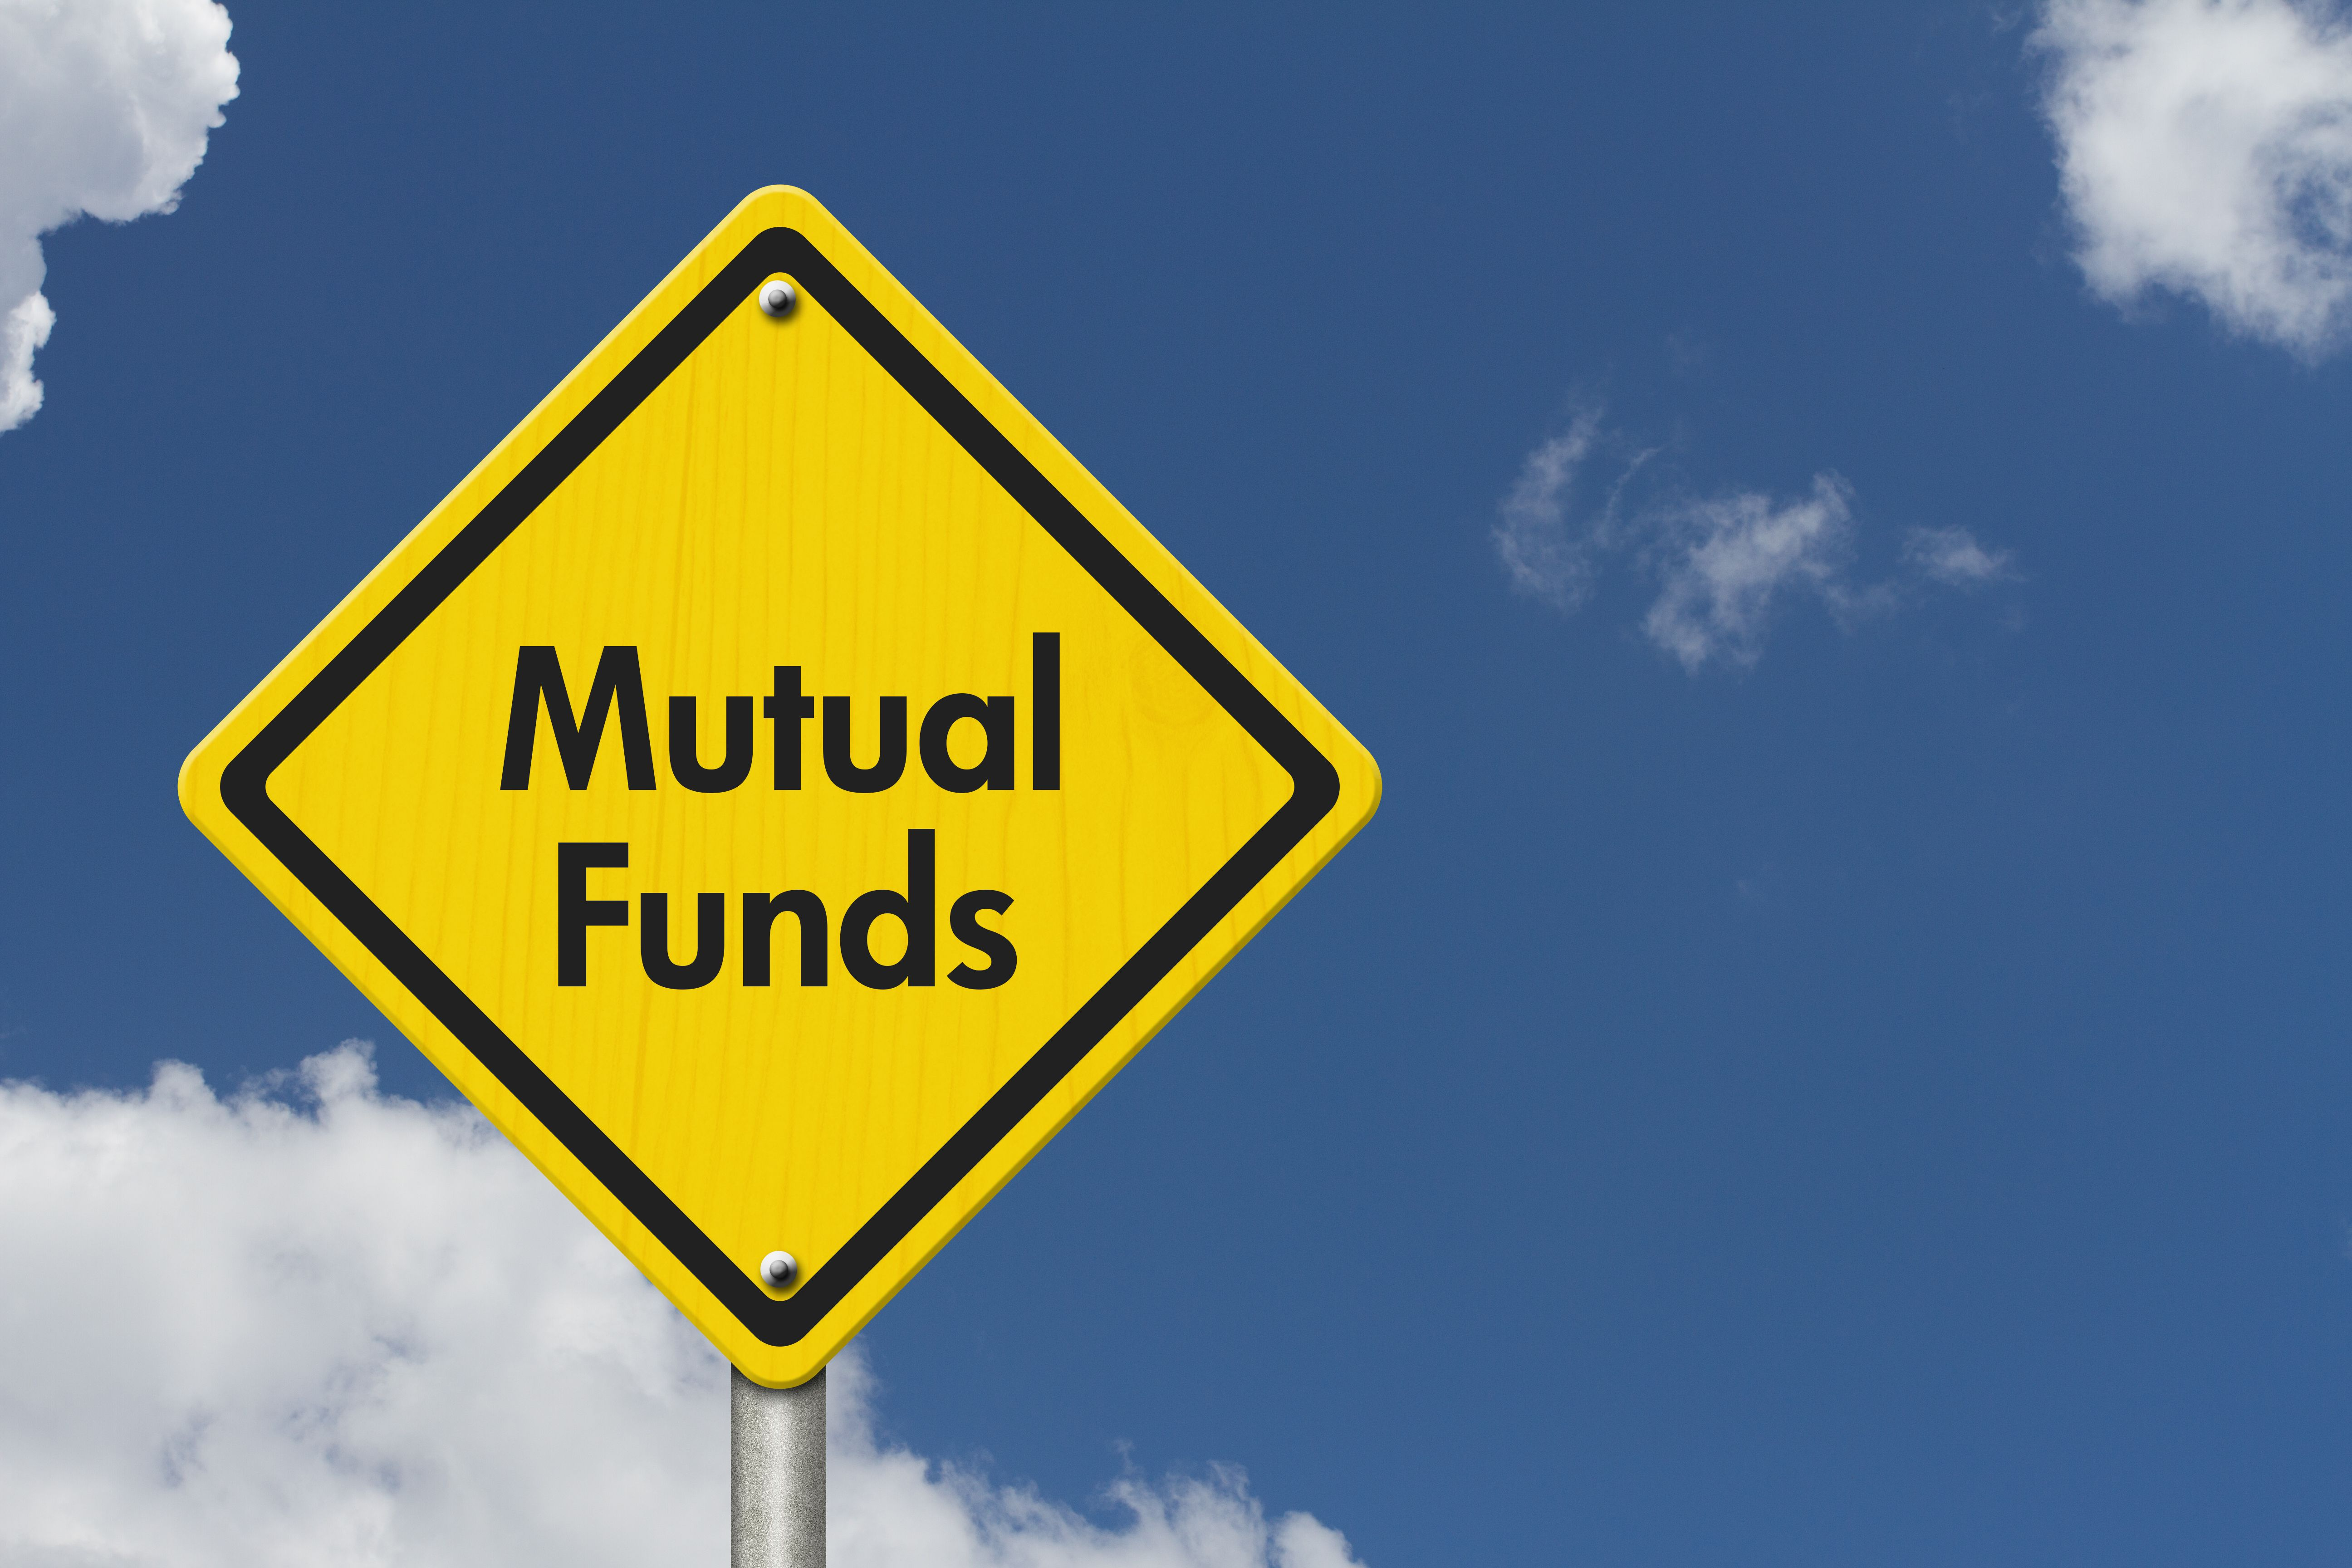 mutal fund These example sentences are selected automatically from various online news sources to reflect current usage of the word 'mutual fund' views expressed in the examples do not represent the opinion of merriam-webster or its editors send us feedback closed-end mutual funds: closed-end mutual funds.